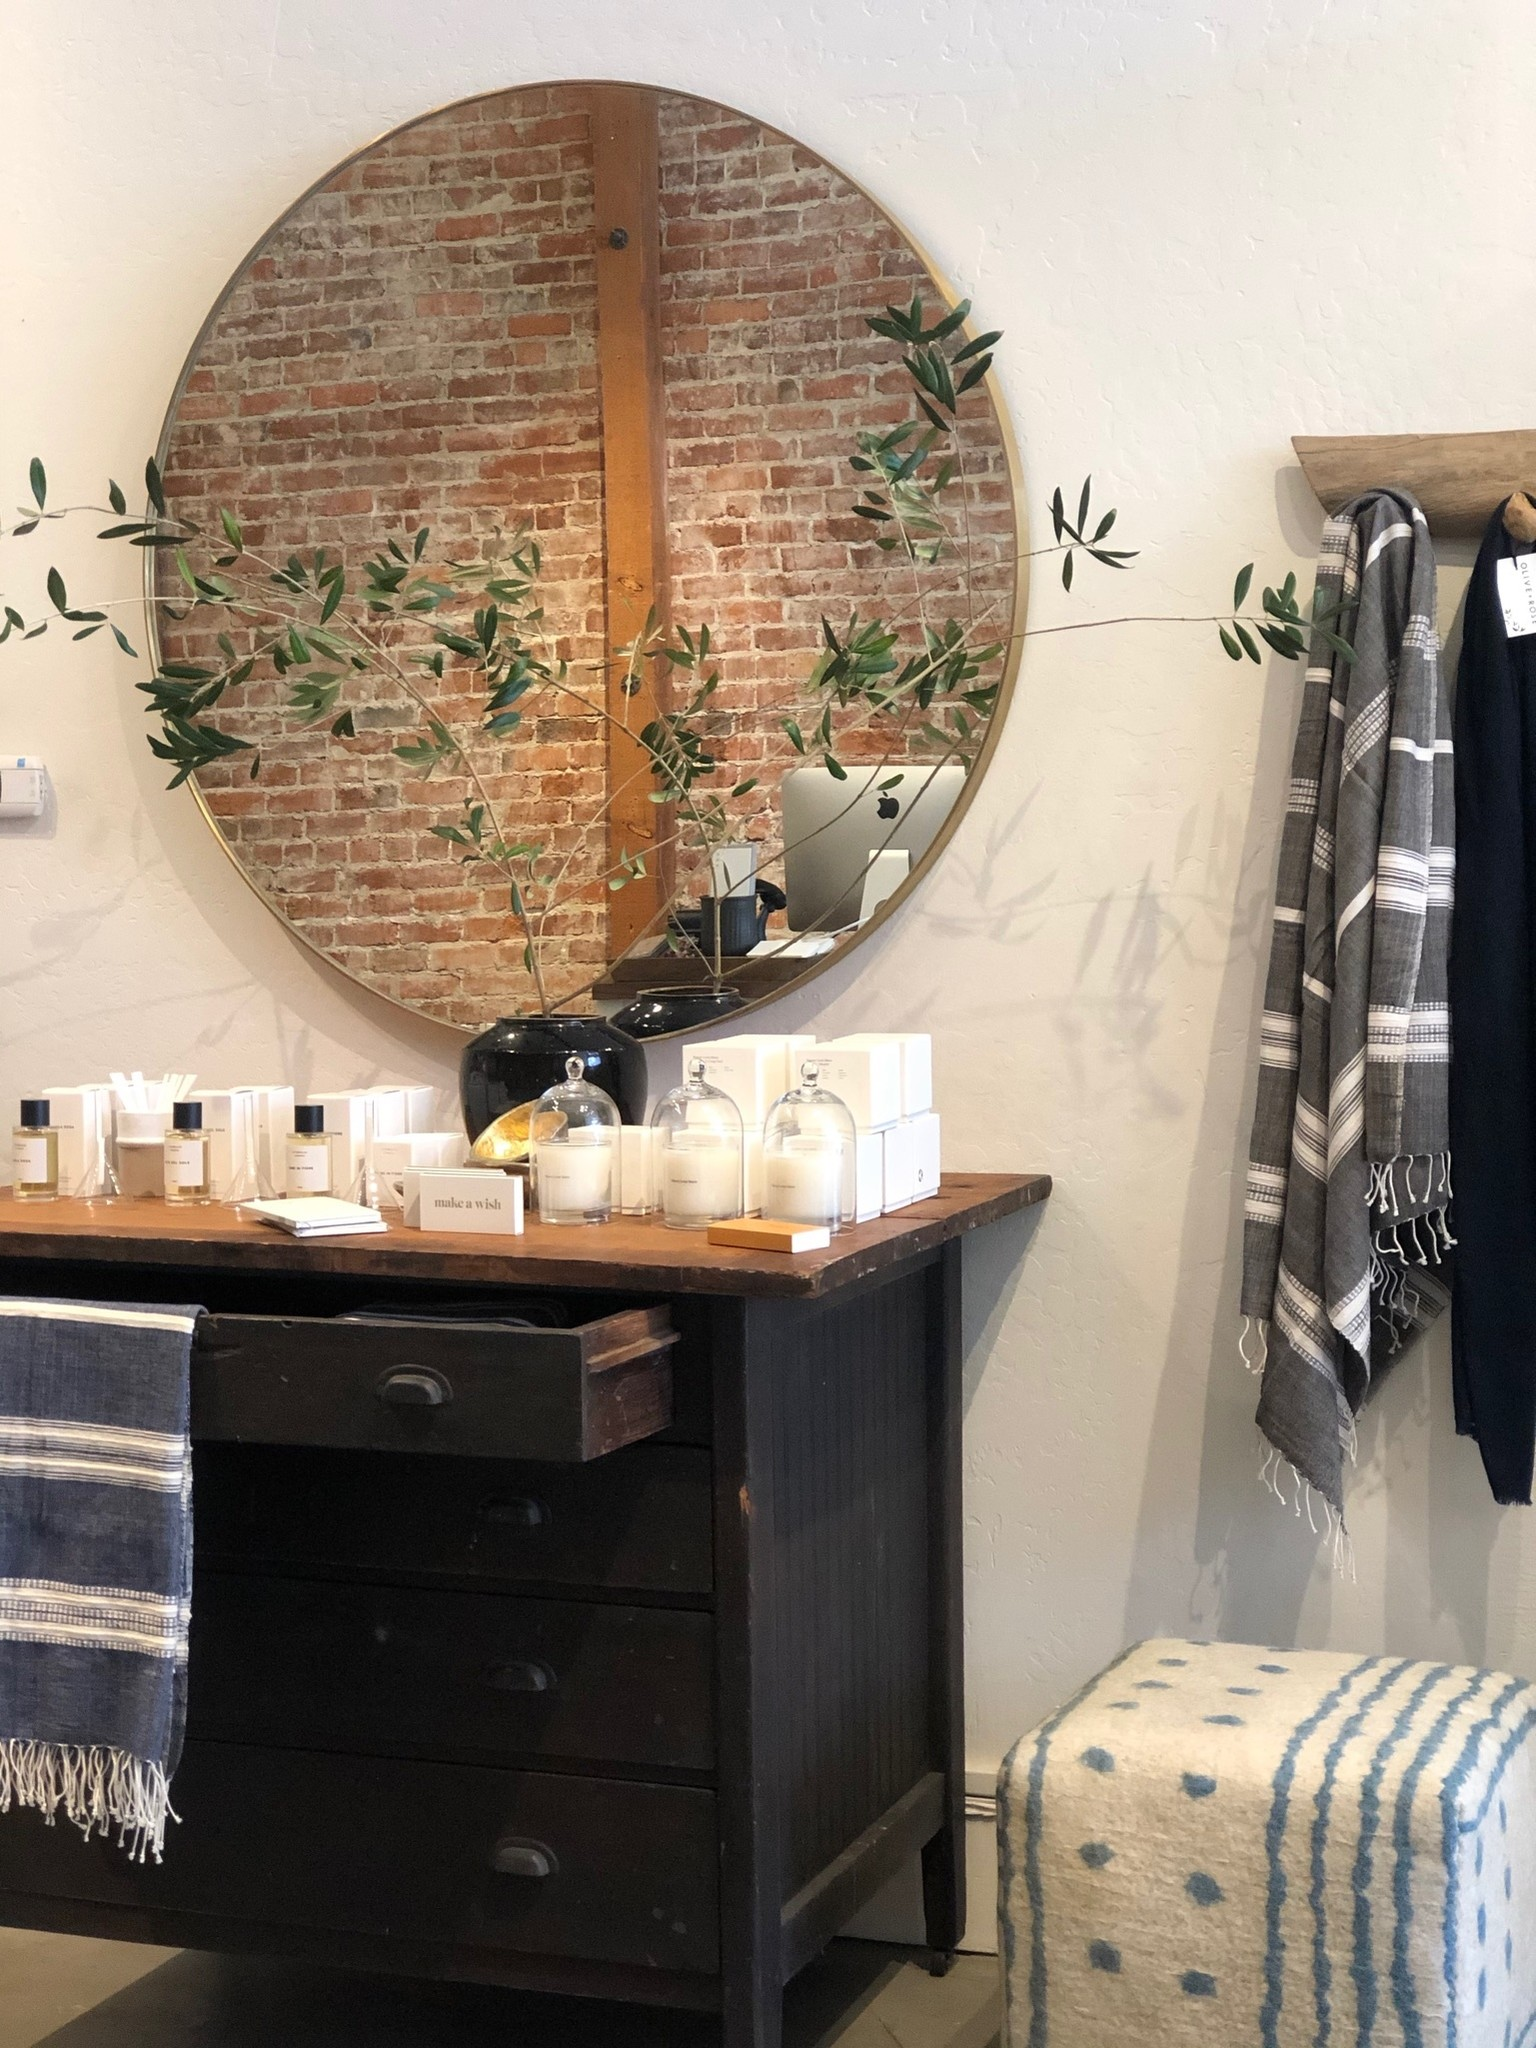 Inside the Olive and Rose shop in Santa Rosa CA